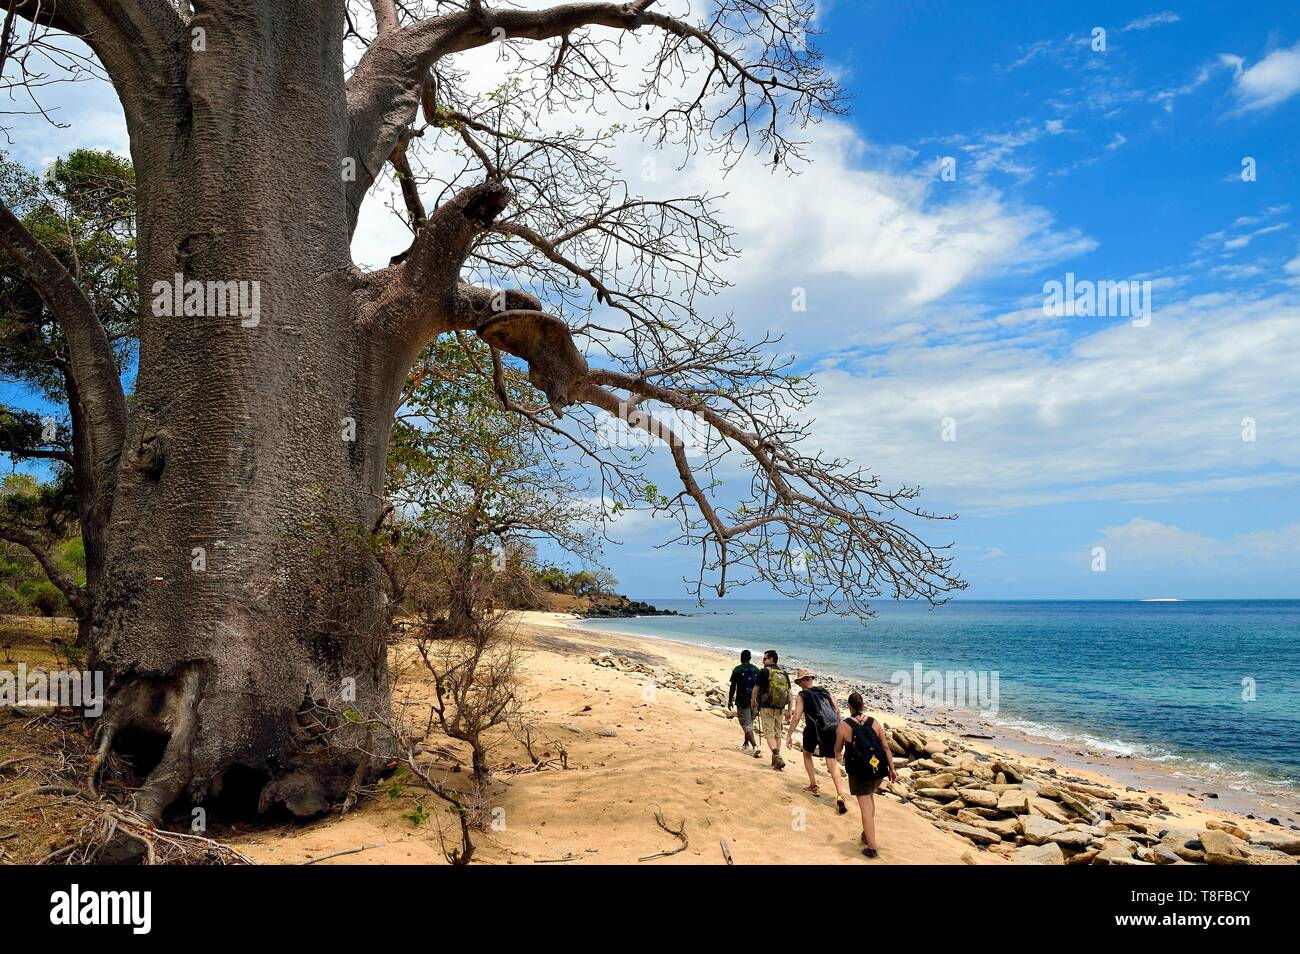 France, Mayotte island (French overseas department), Grande Terre, M'Tsamoudou, Saziley headland, hikers on the long distance hiking trail going around the island, baobab on the beach - Stock Image